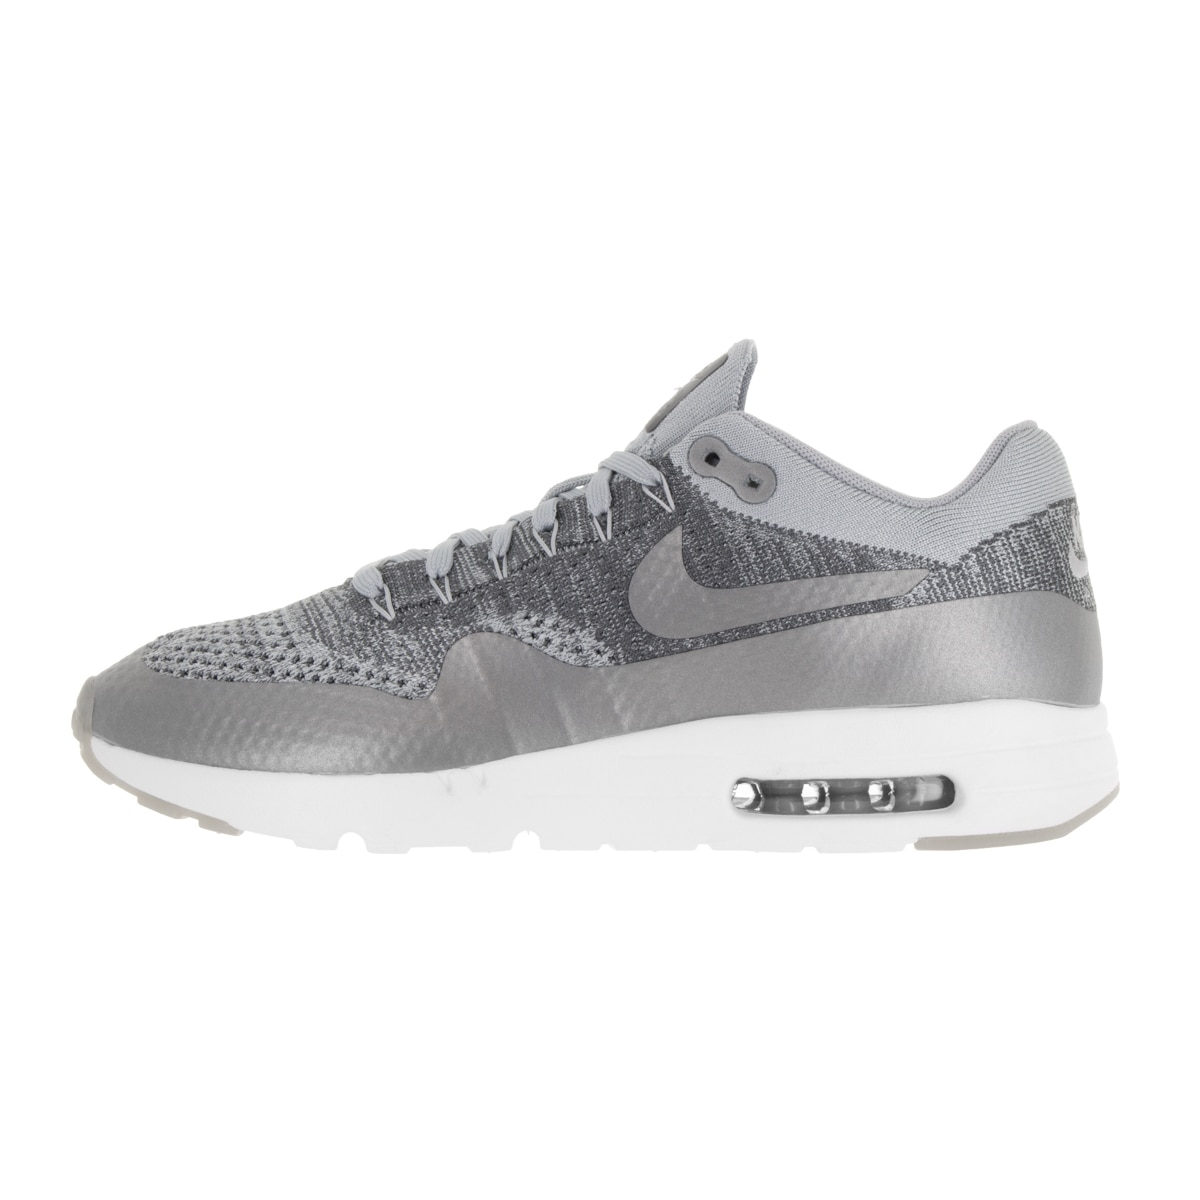 317ff3da4f31 Shop Nike Men s Air Max 1 Ultra Flyknit Wolf Grey Wlf Grey Drk Gry Wht  Running Shoe - Free Shipping Today - Overstock - 13394395